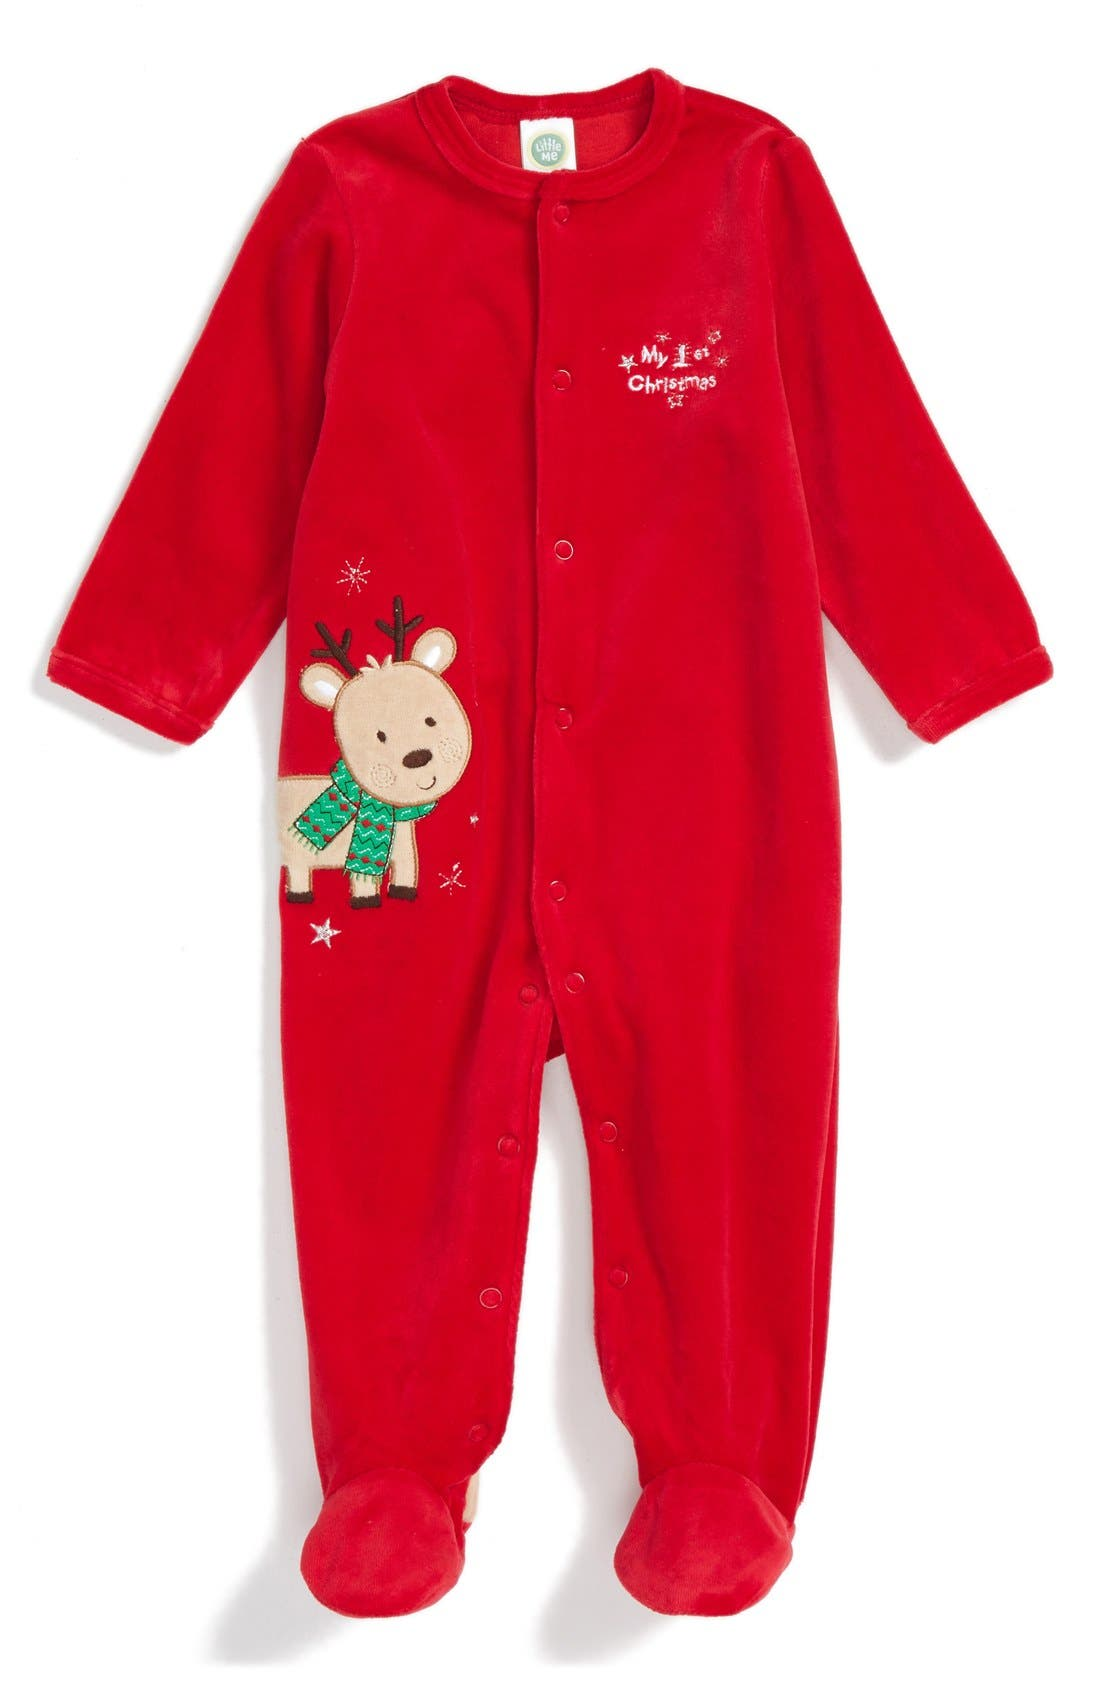 'My First Christmas' Velour One-Piece,                             Main thumbnail 1, color,                             600